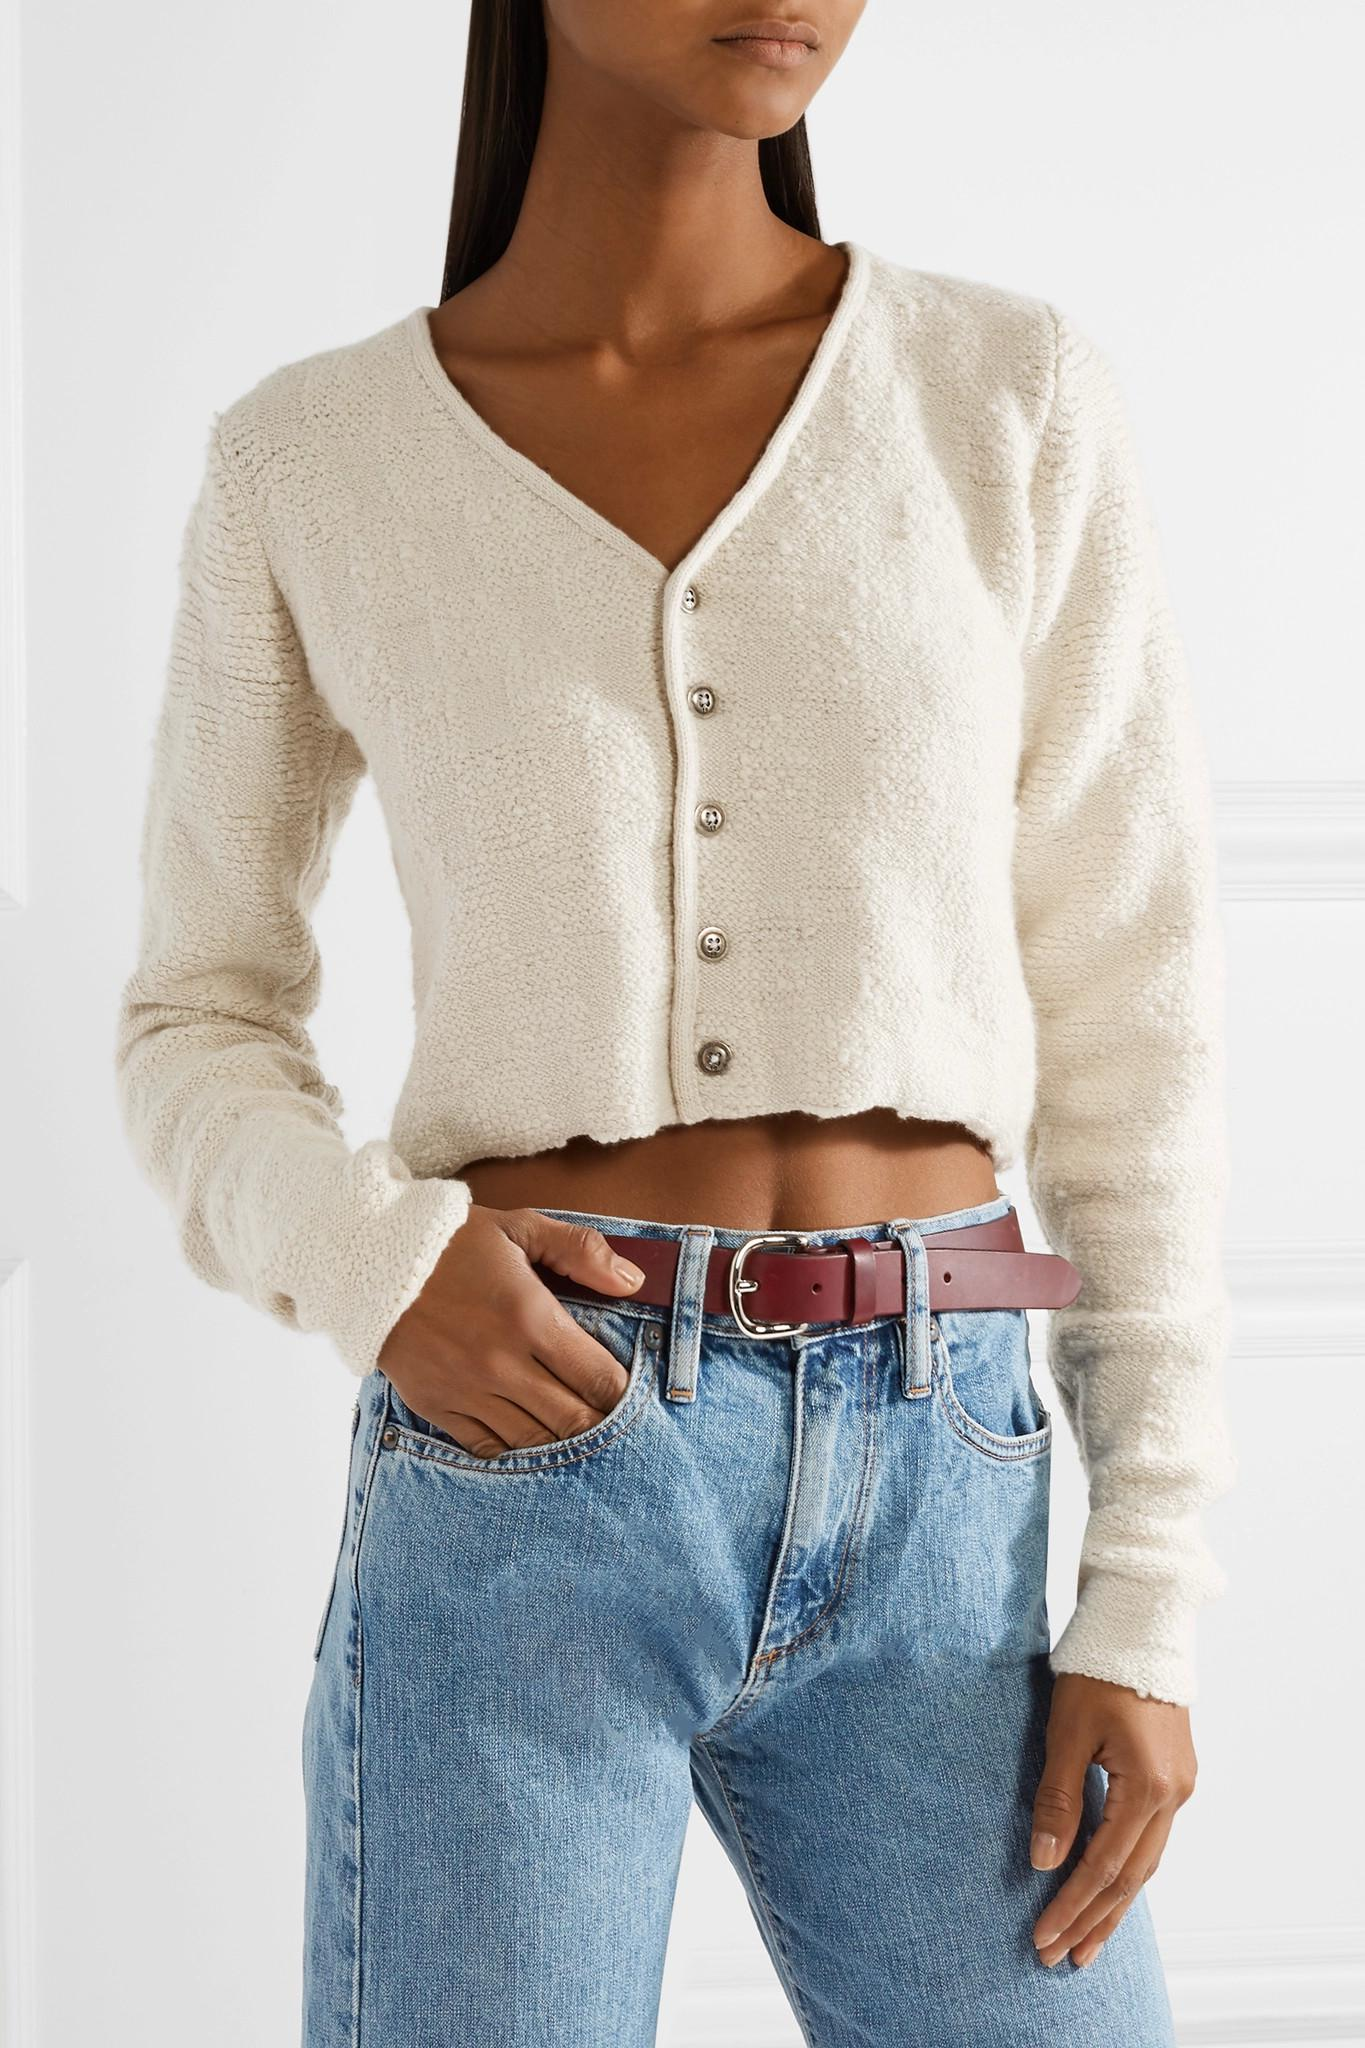 The elder statesman Cropped Cashmere Cardigan in Natural | Lyst